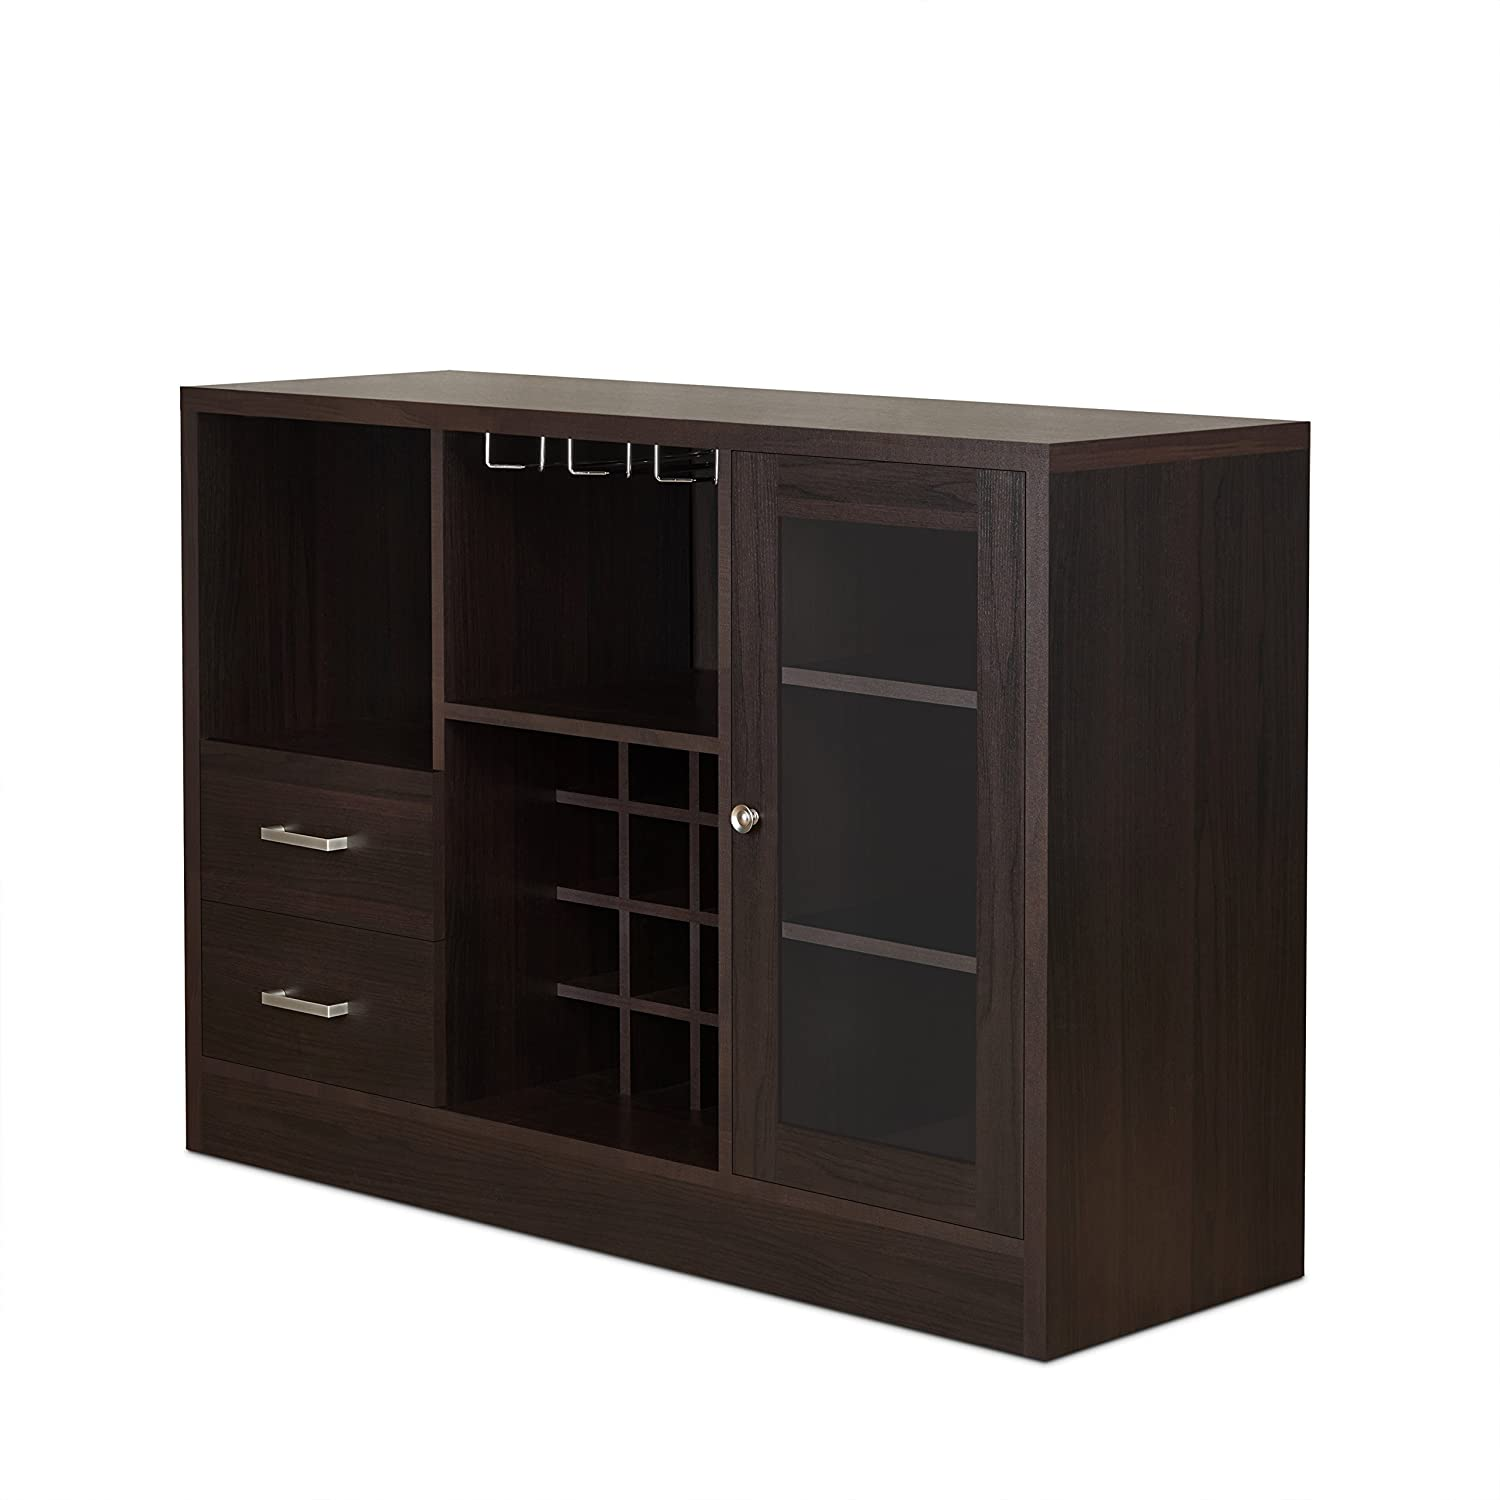 Acme Furniture 72640 Joyce Espresso Server